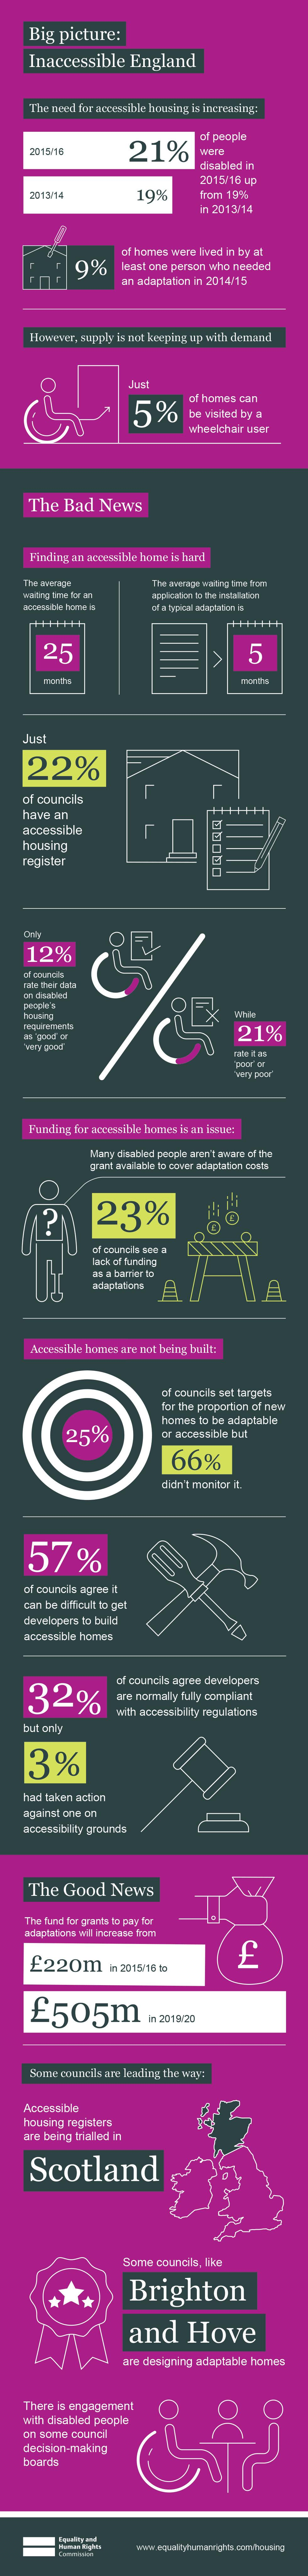 infographic showing the stats about inaccessible housing in England